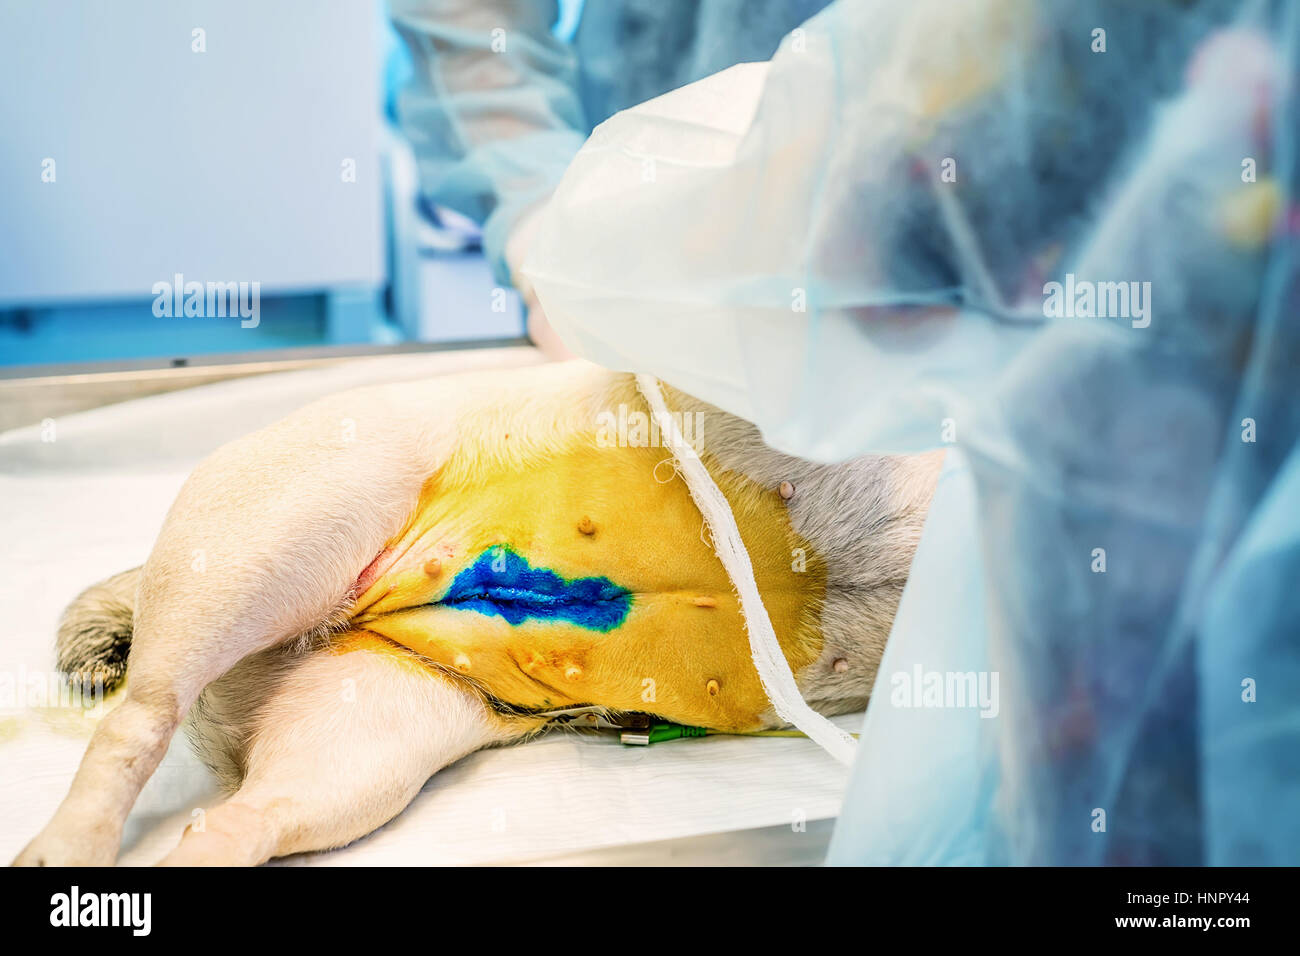 Veterinary doctors conducting surgery - Stock Image